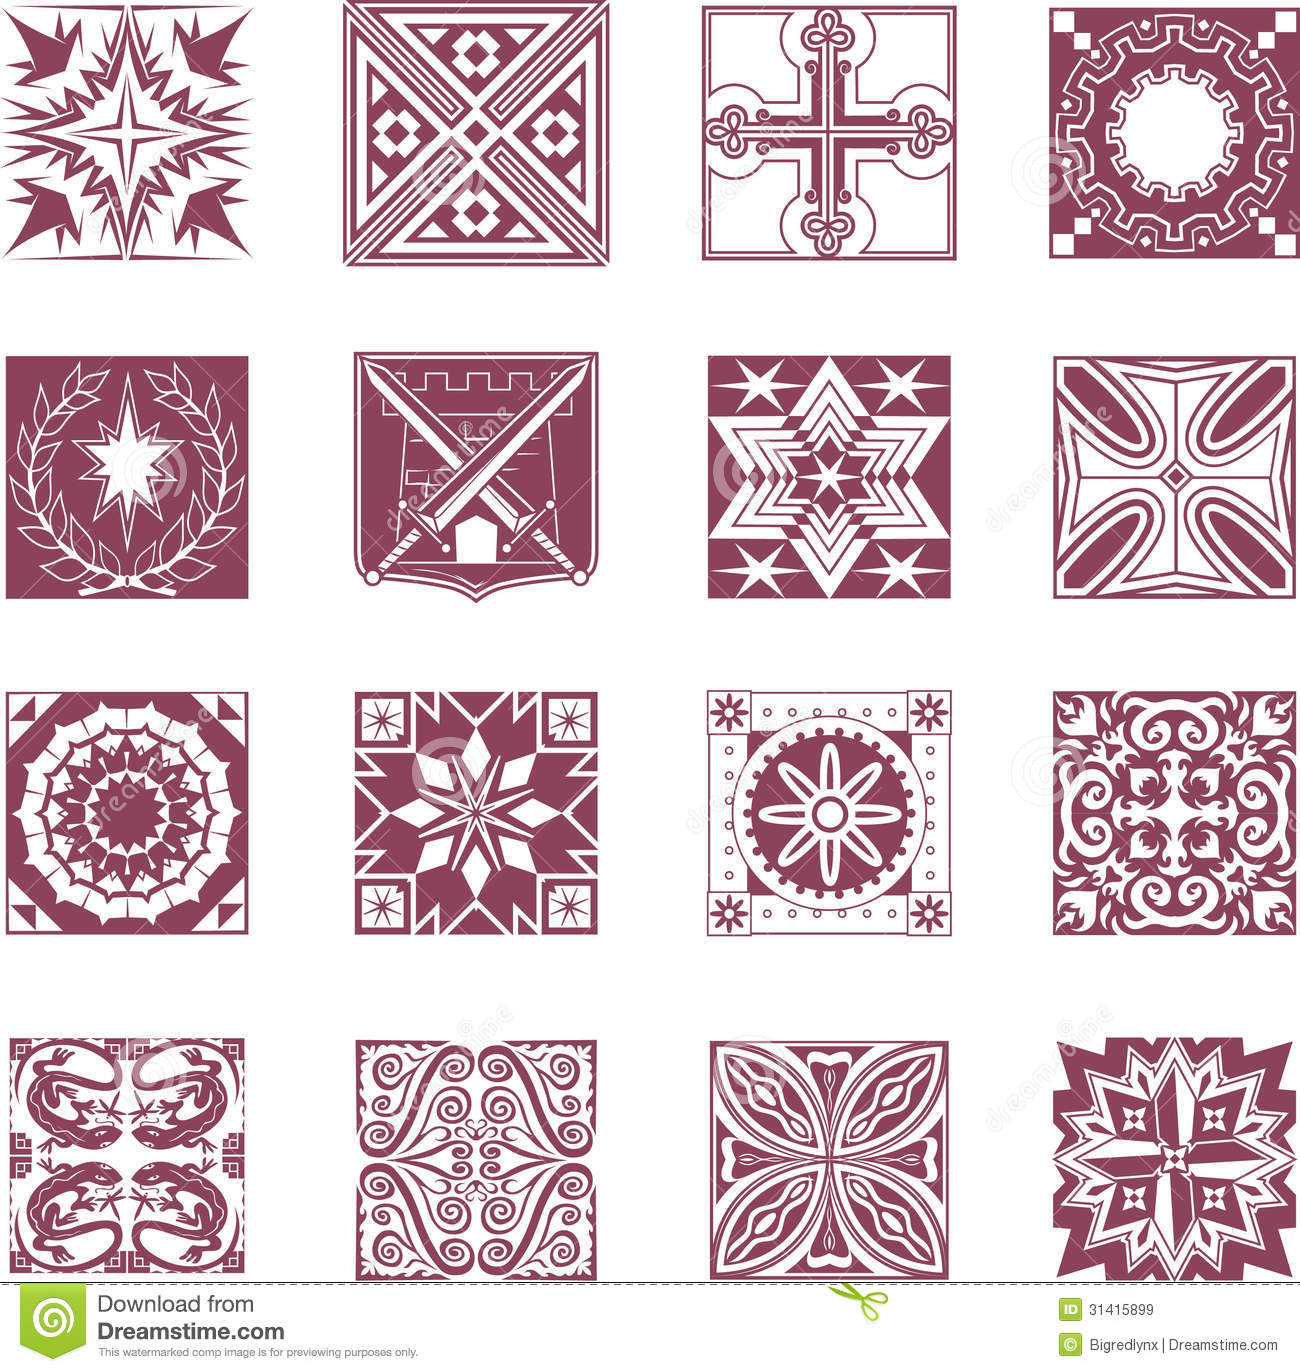 Ornate tiles royalty free. Clipart tile patterns